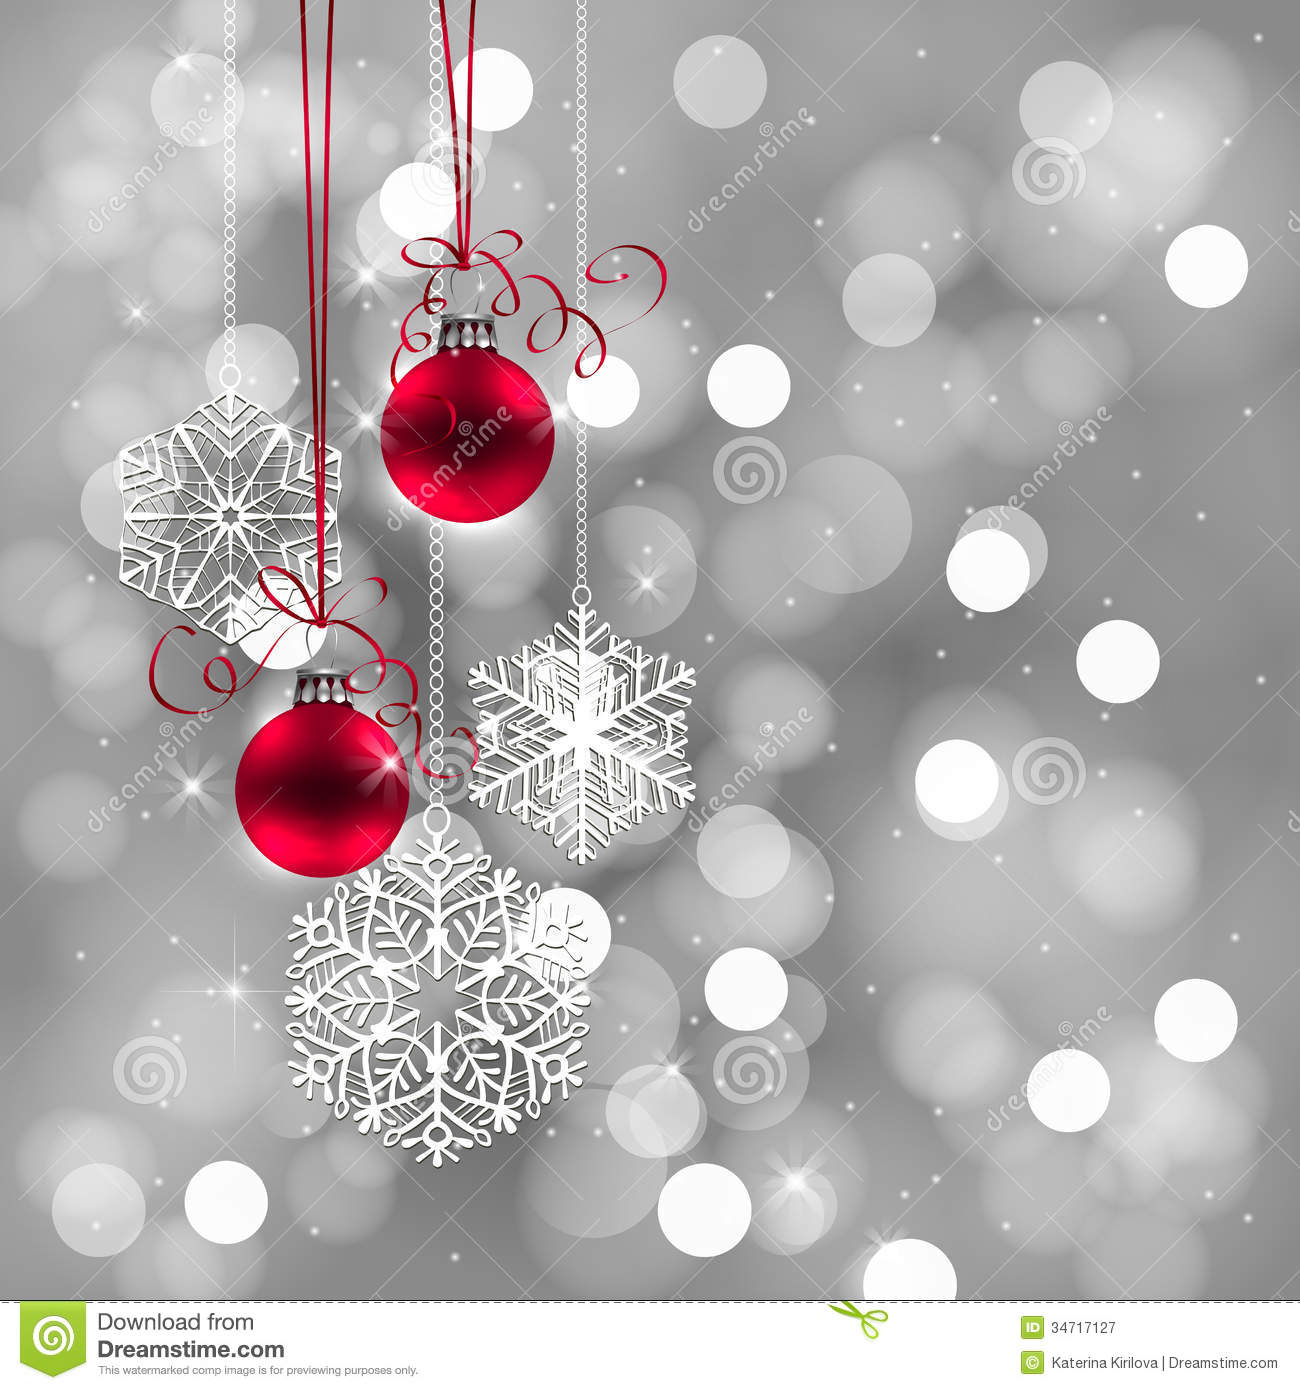 falling snowflake christmas lights christmas background stock vector illustration of falling snowflake christmas lights